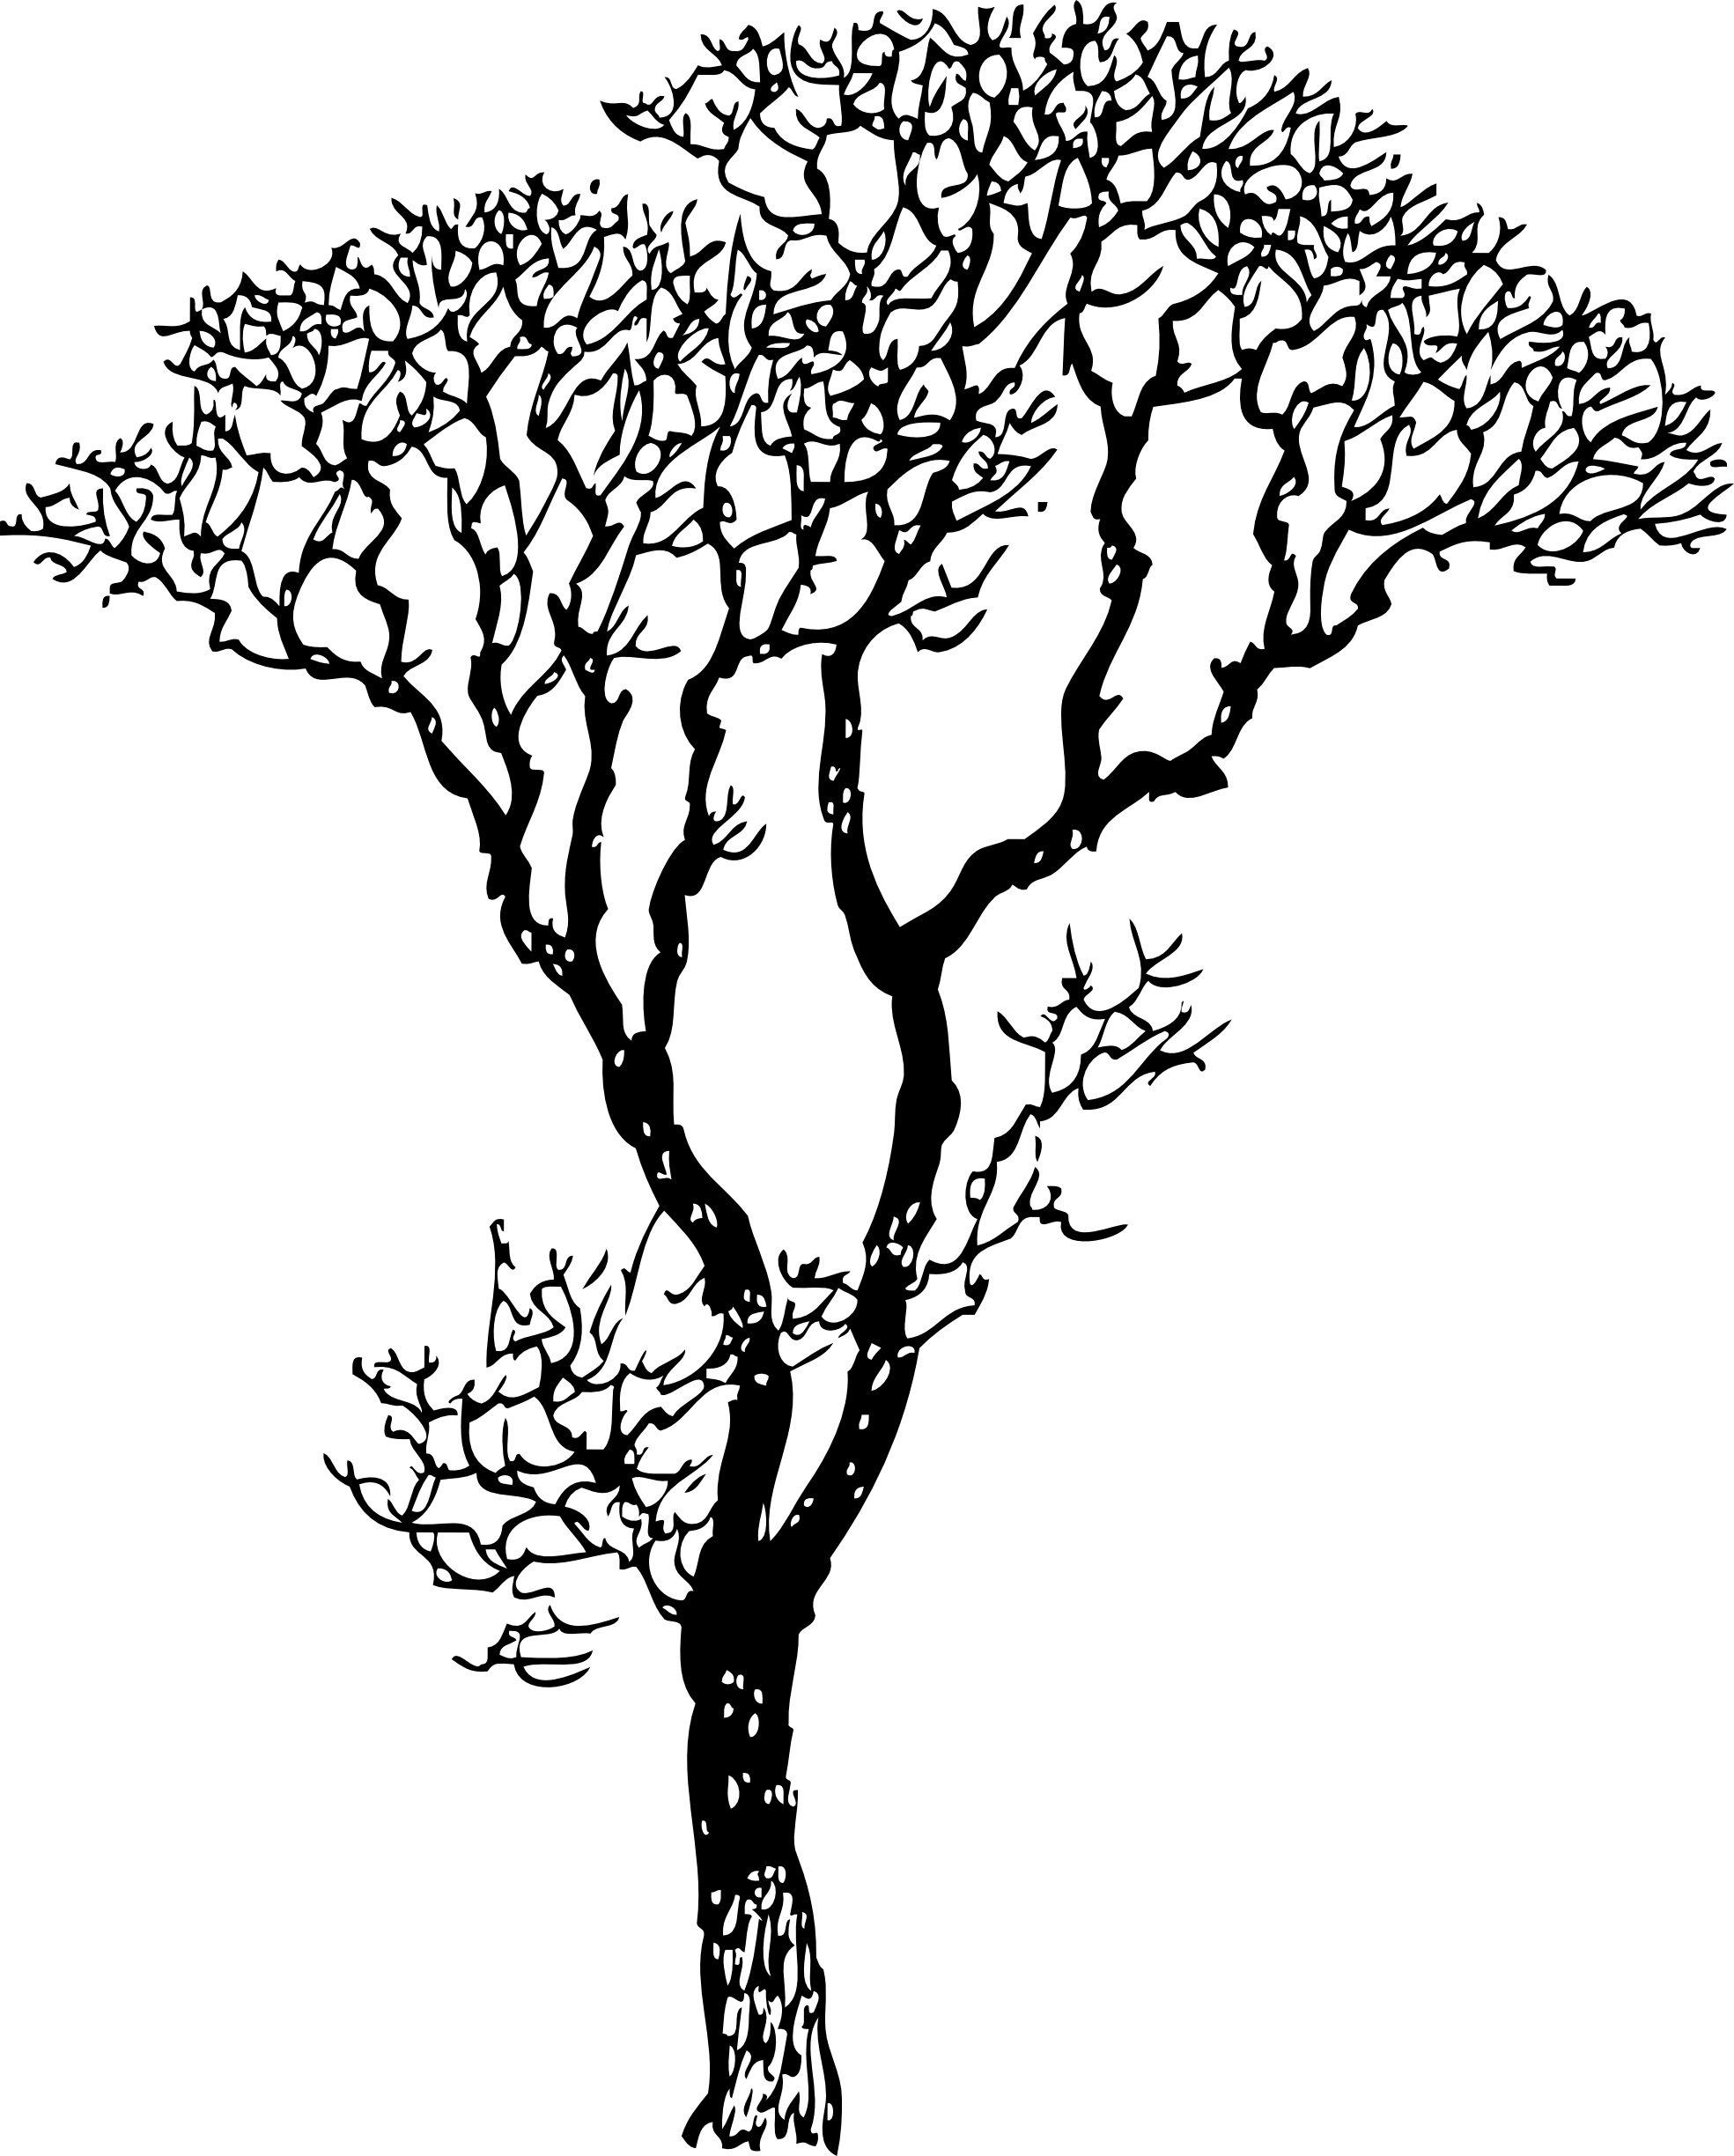 graphic royalty free stock Tree branch clipart black and white. Bare line art coloring.